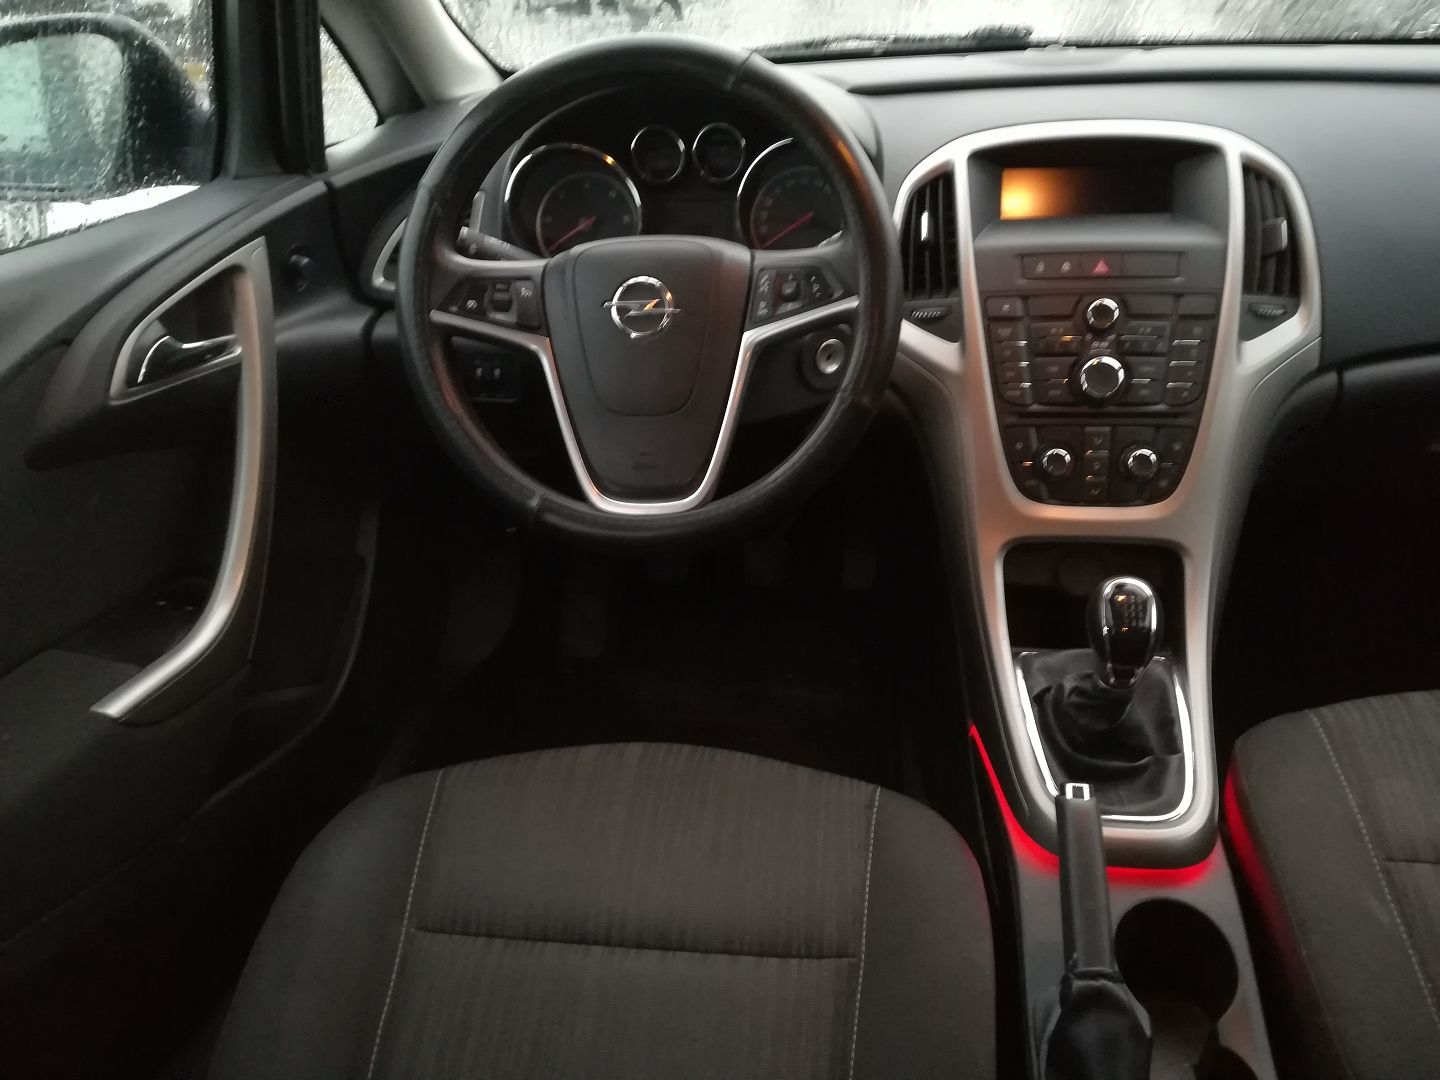 OPEL ASTRA SPORTS TOURER 1.7 CDTI110 FAP CONNECT PACK